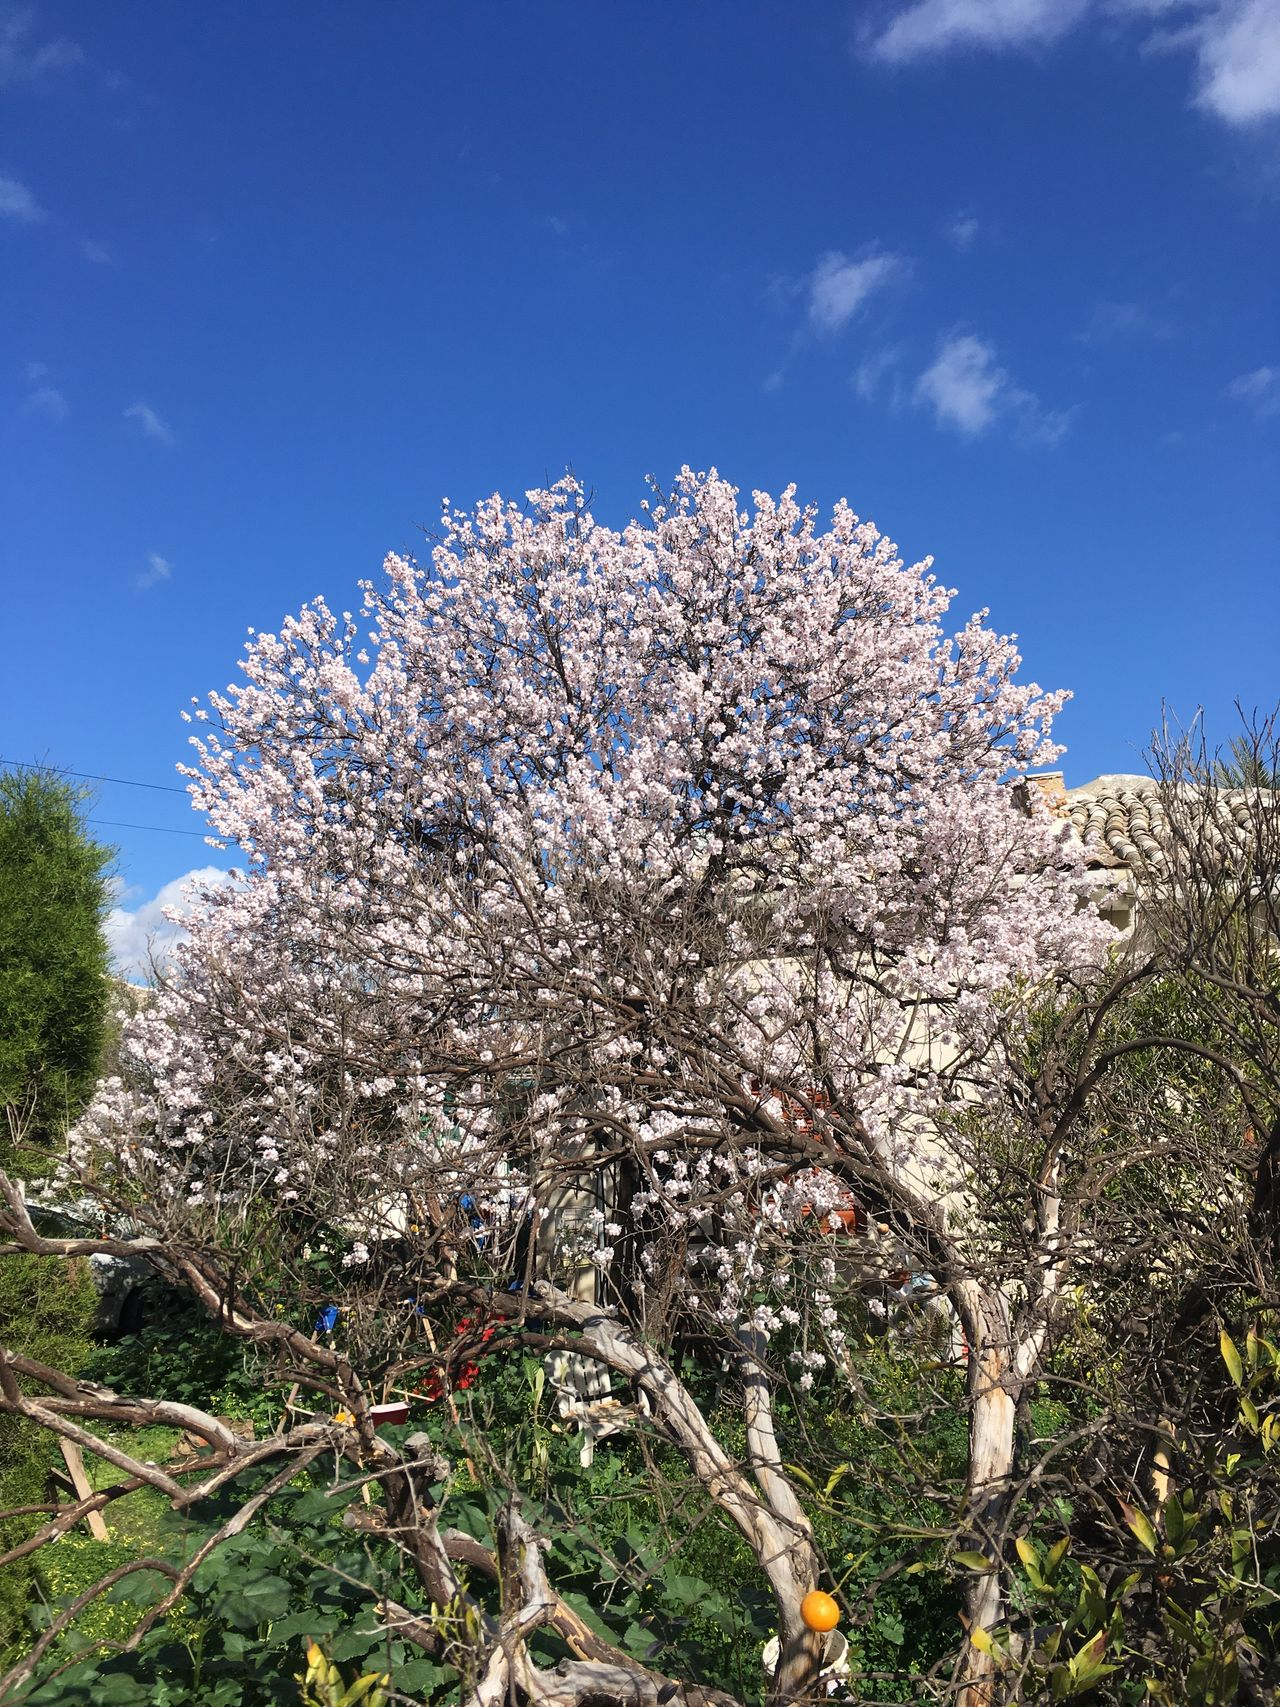 Flower Blossom Tree Nature Growth Beauty In Nature Freshness Springtime Sky Fragility No People Outdoors Day Branch